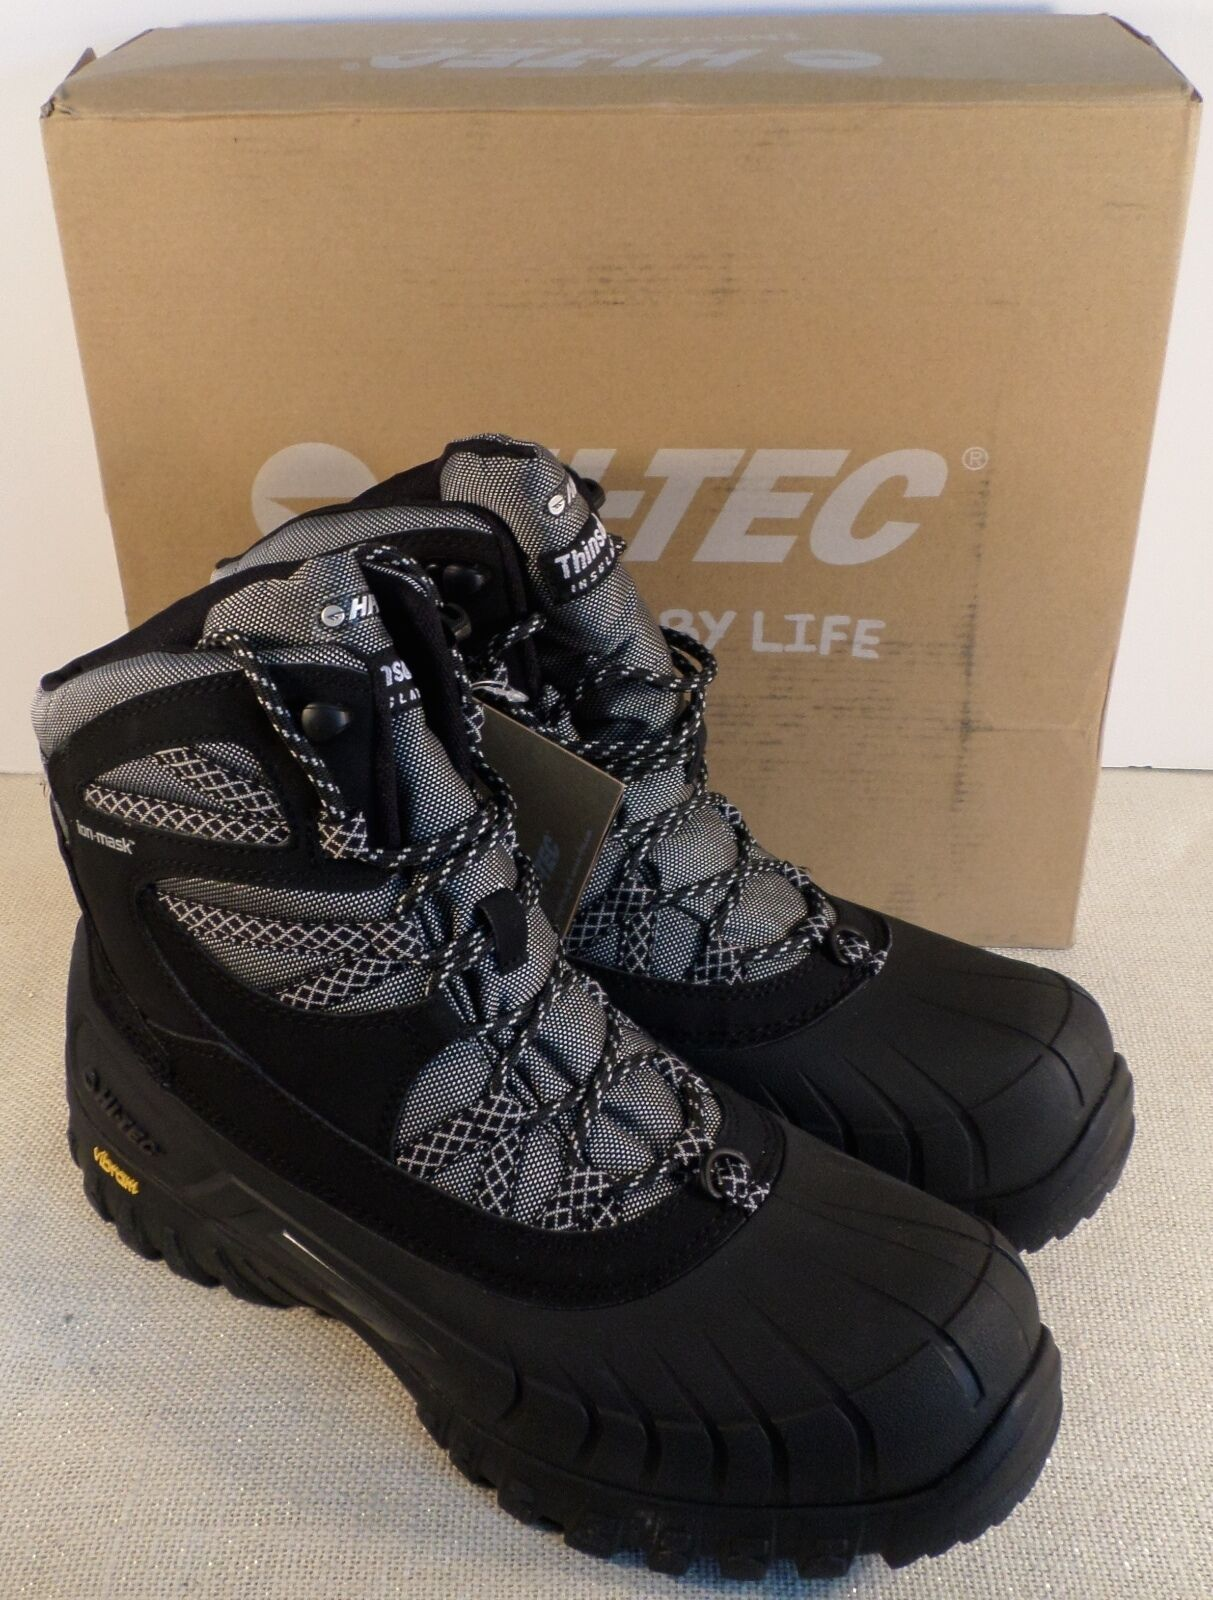 HI-TEC 40798 MEN'S OZARK 200 I WP MEN'S BLACK BOOTS NEW IN BOX